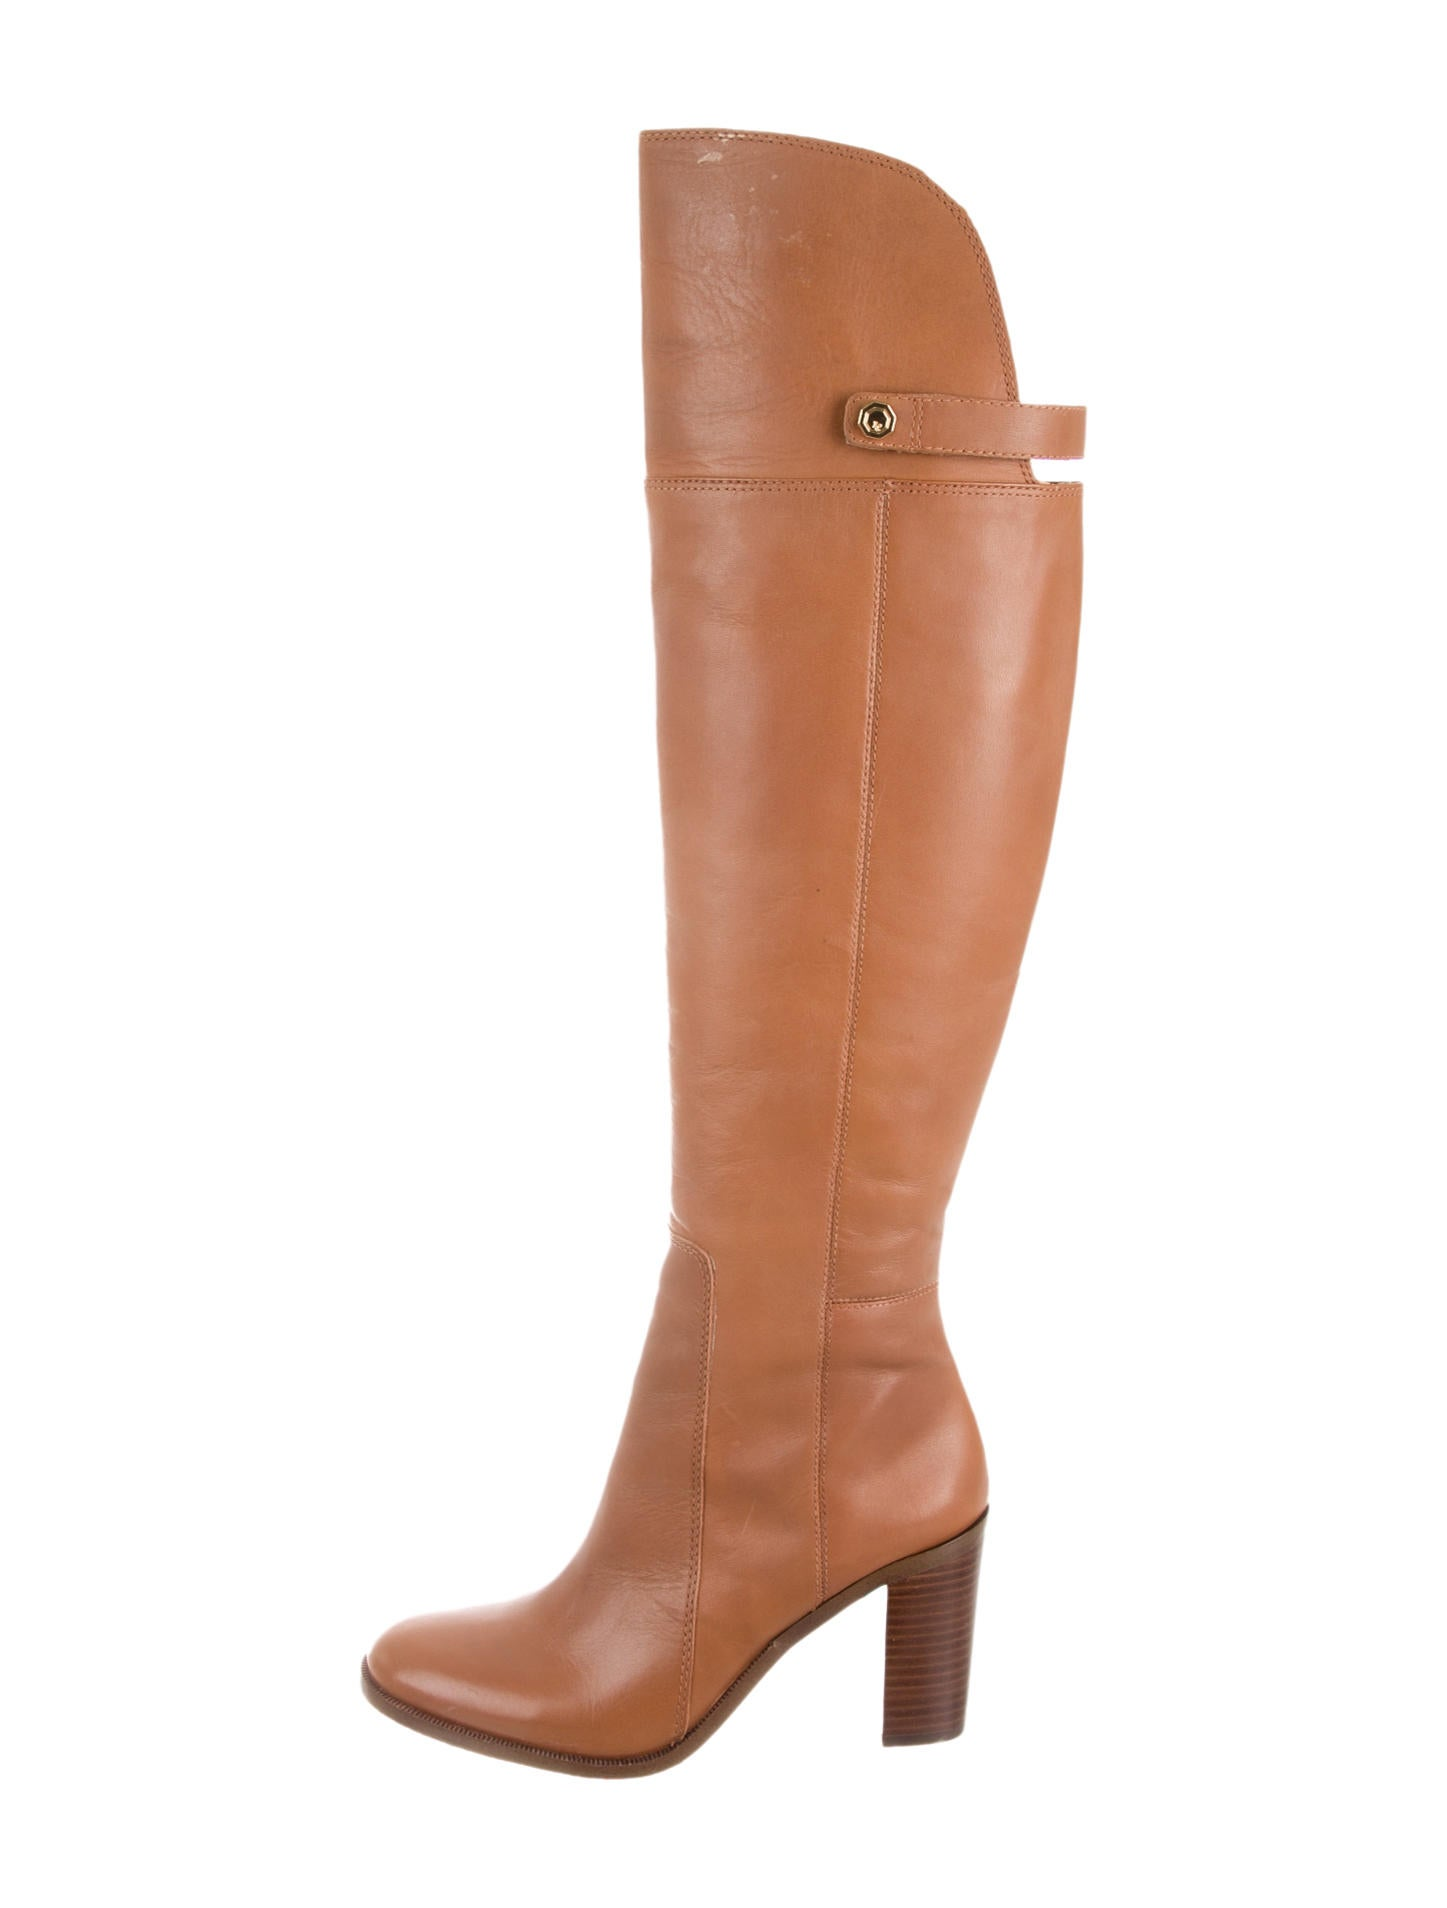 9c1c4044e9a Louise et Cie Over-The-Knee Navaria Boots w  Tags - Shoes ...